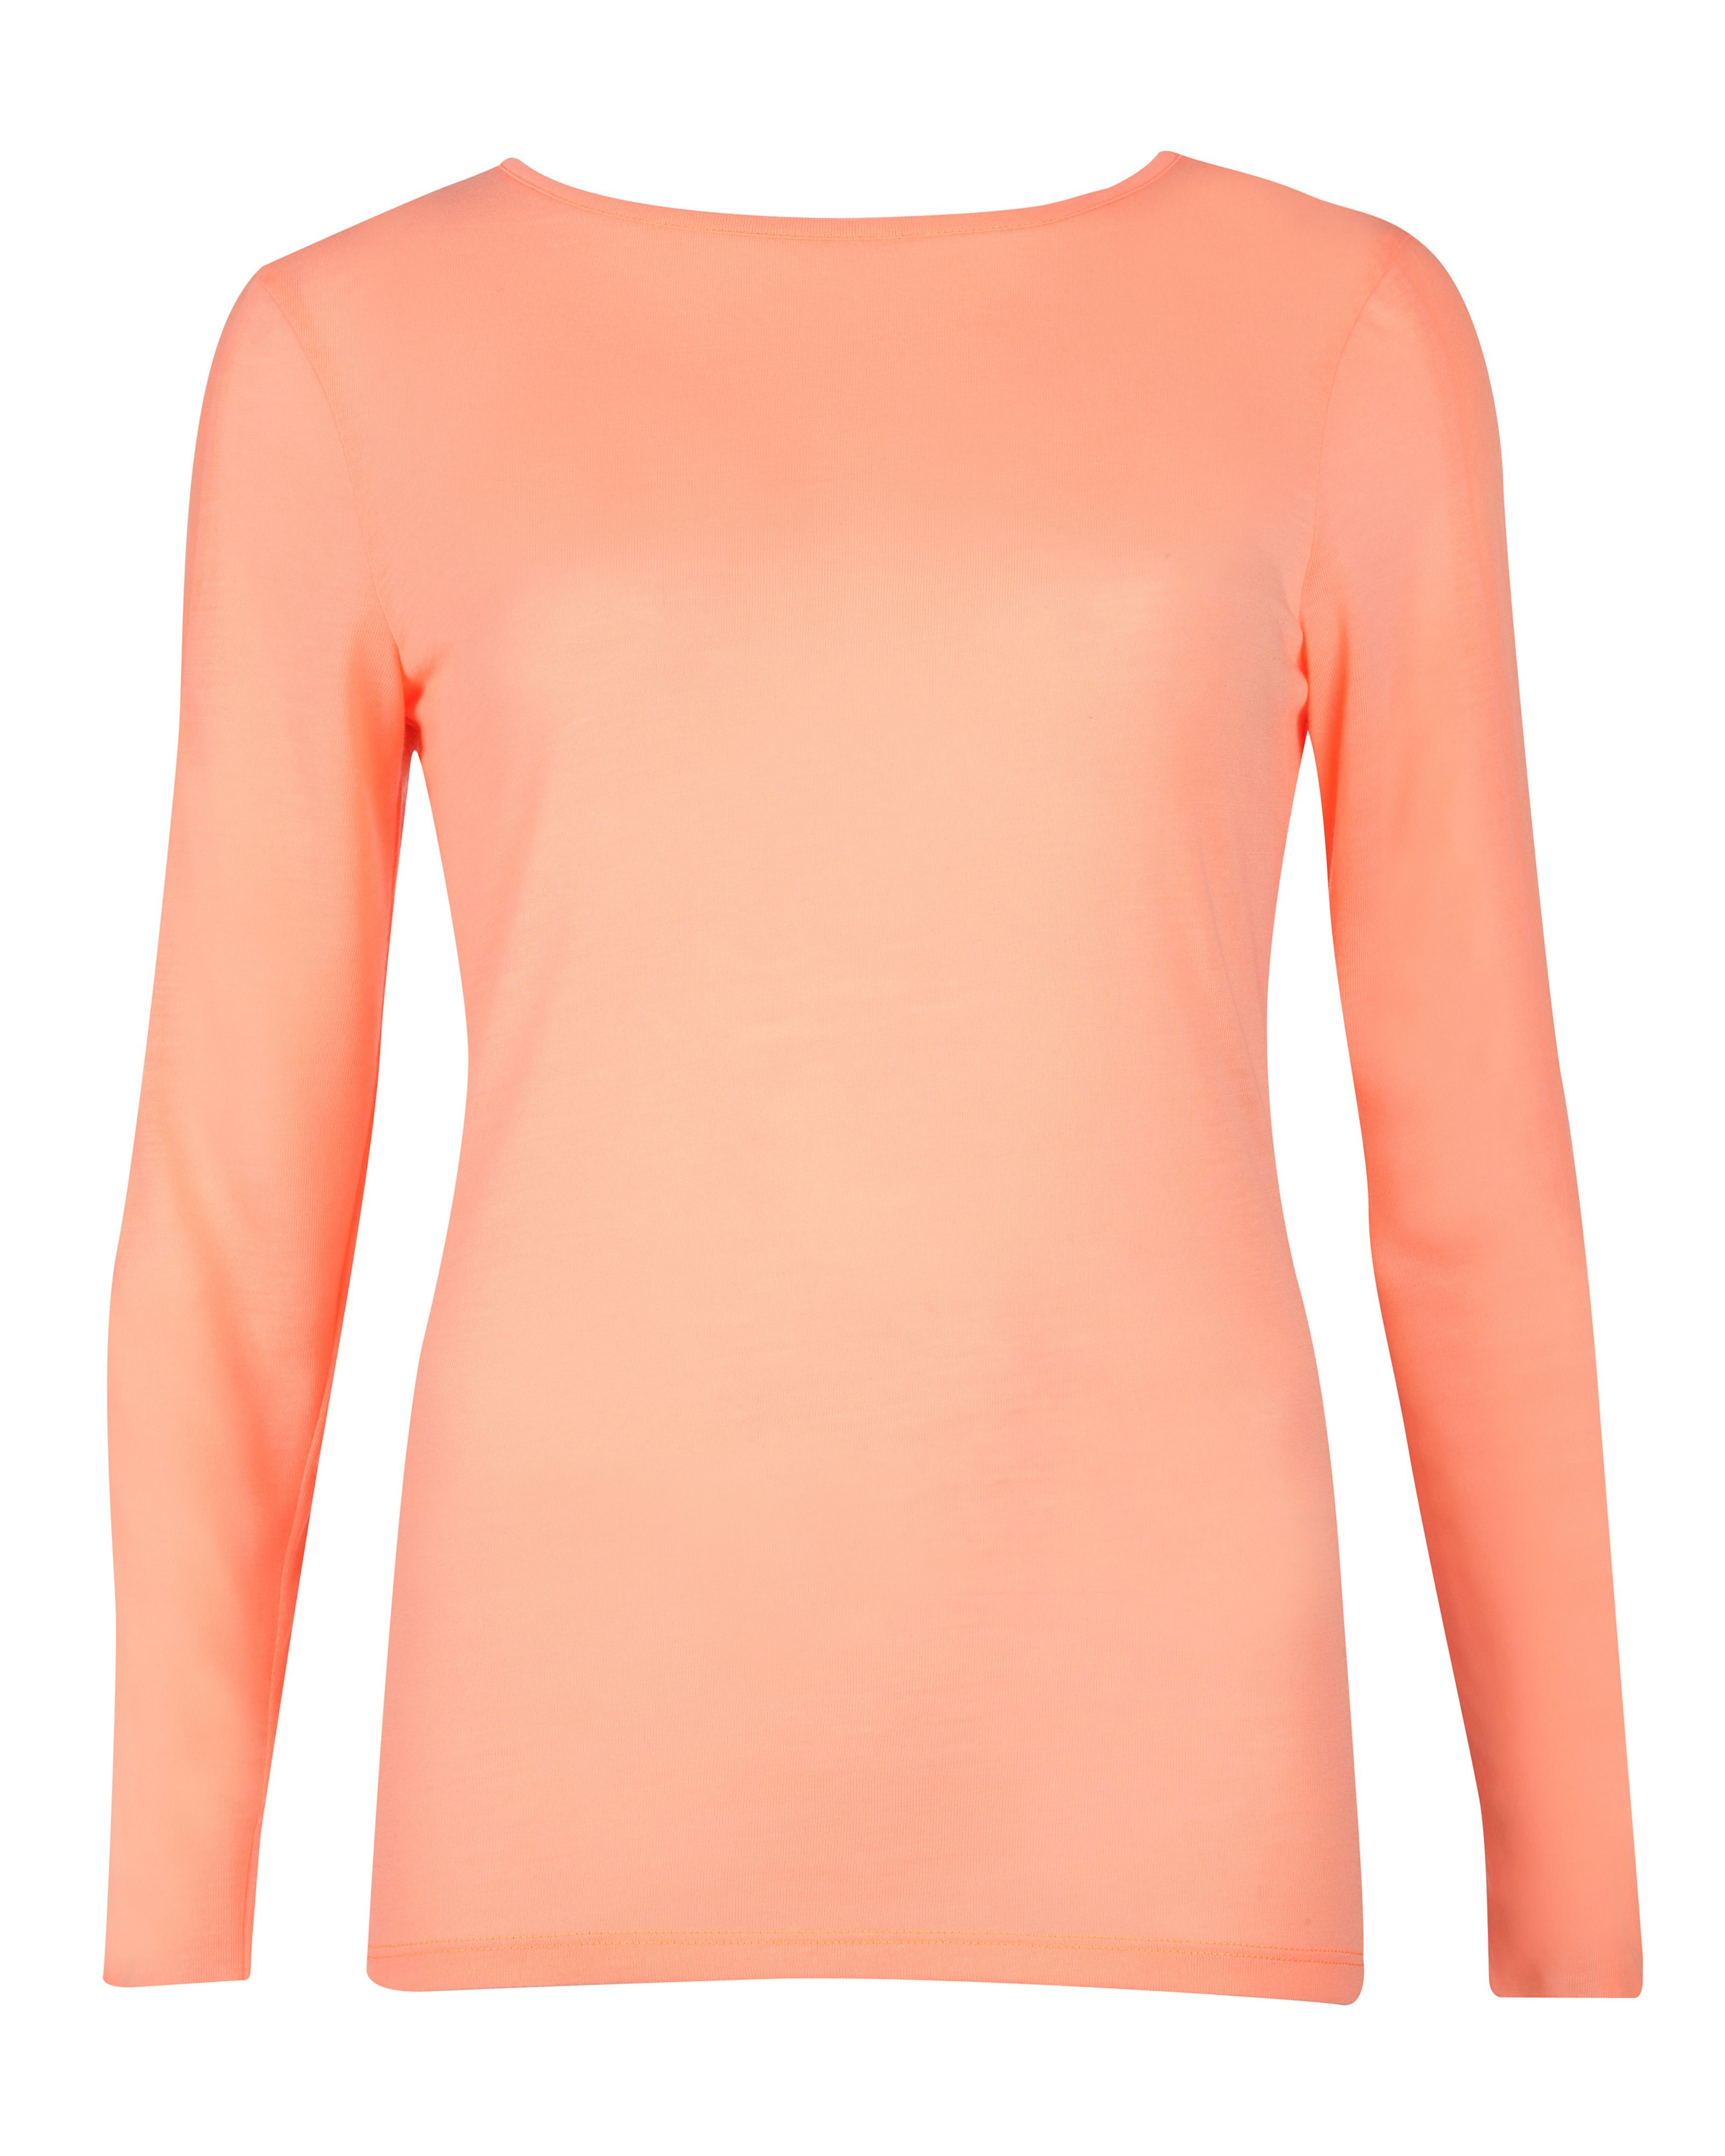 Asteea basic jersey top